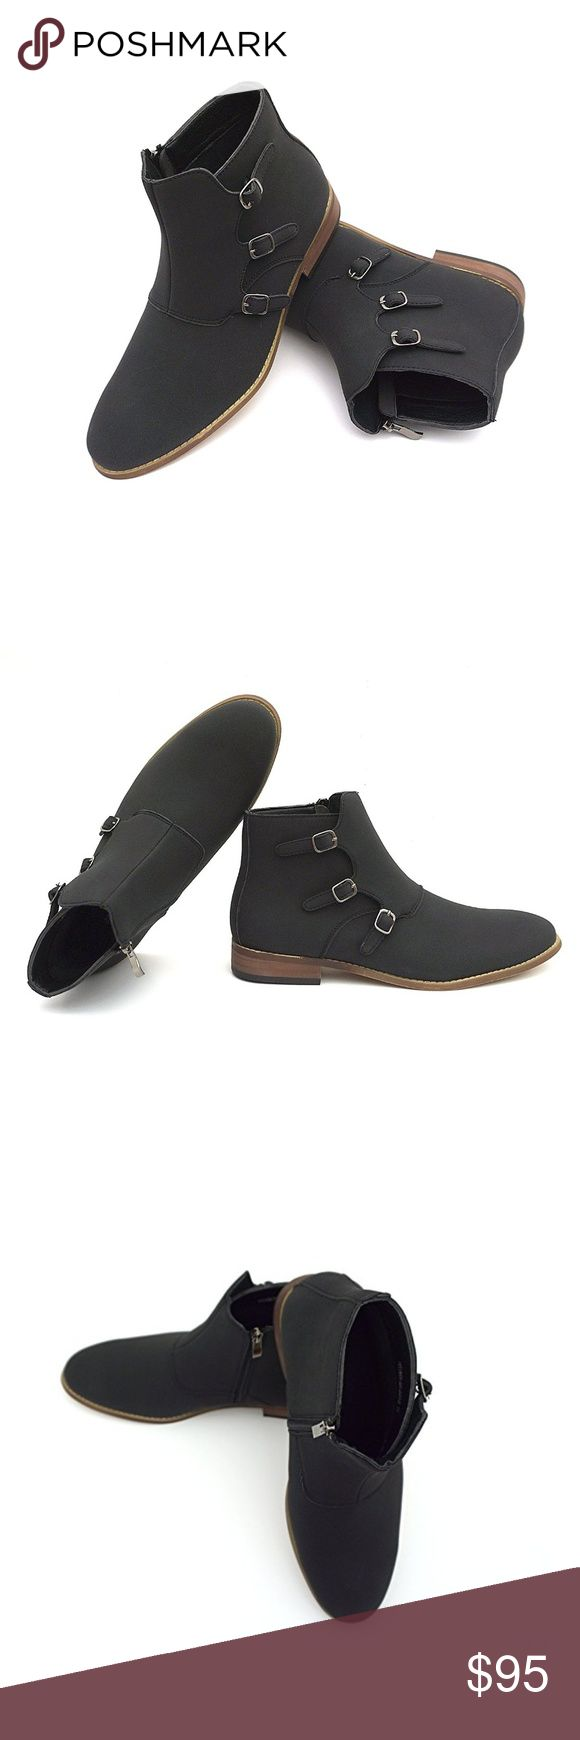 """Mens """"Hector"""" Side Zipper & Buckle Chelsea Boots NEW Mens """"Hector"""" Side Zipper & Buckle Chelsea Boots  Wearing these buckle ankle boots will immediately identify you as a person of great fashion sense and distinction. This boot shoe is a cross between a Jodhpur and a Chelsea boot, with its own unique style, so you can stand out this season. The Chukka boot is becoming a staple in all men's wardrobes. These pair of suede ankle boot shoes are made of super durable suede material.  Moda…"""